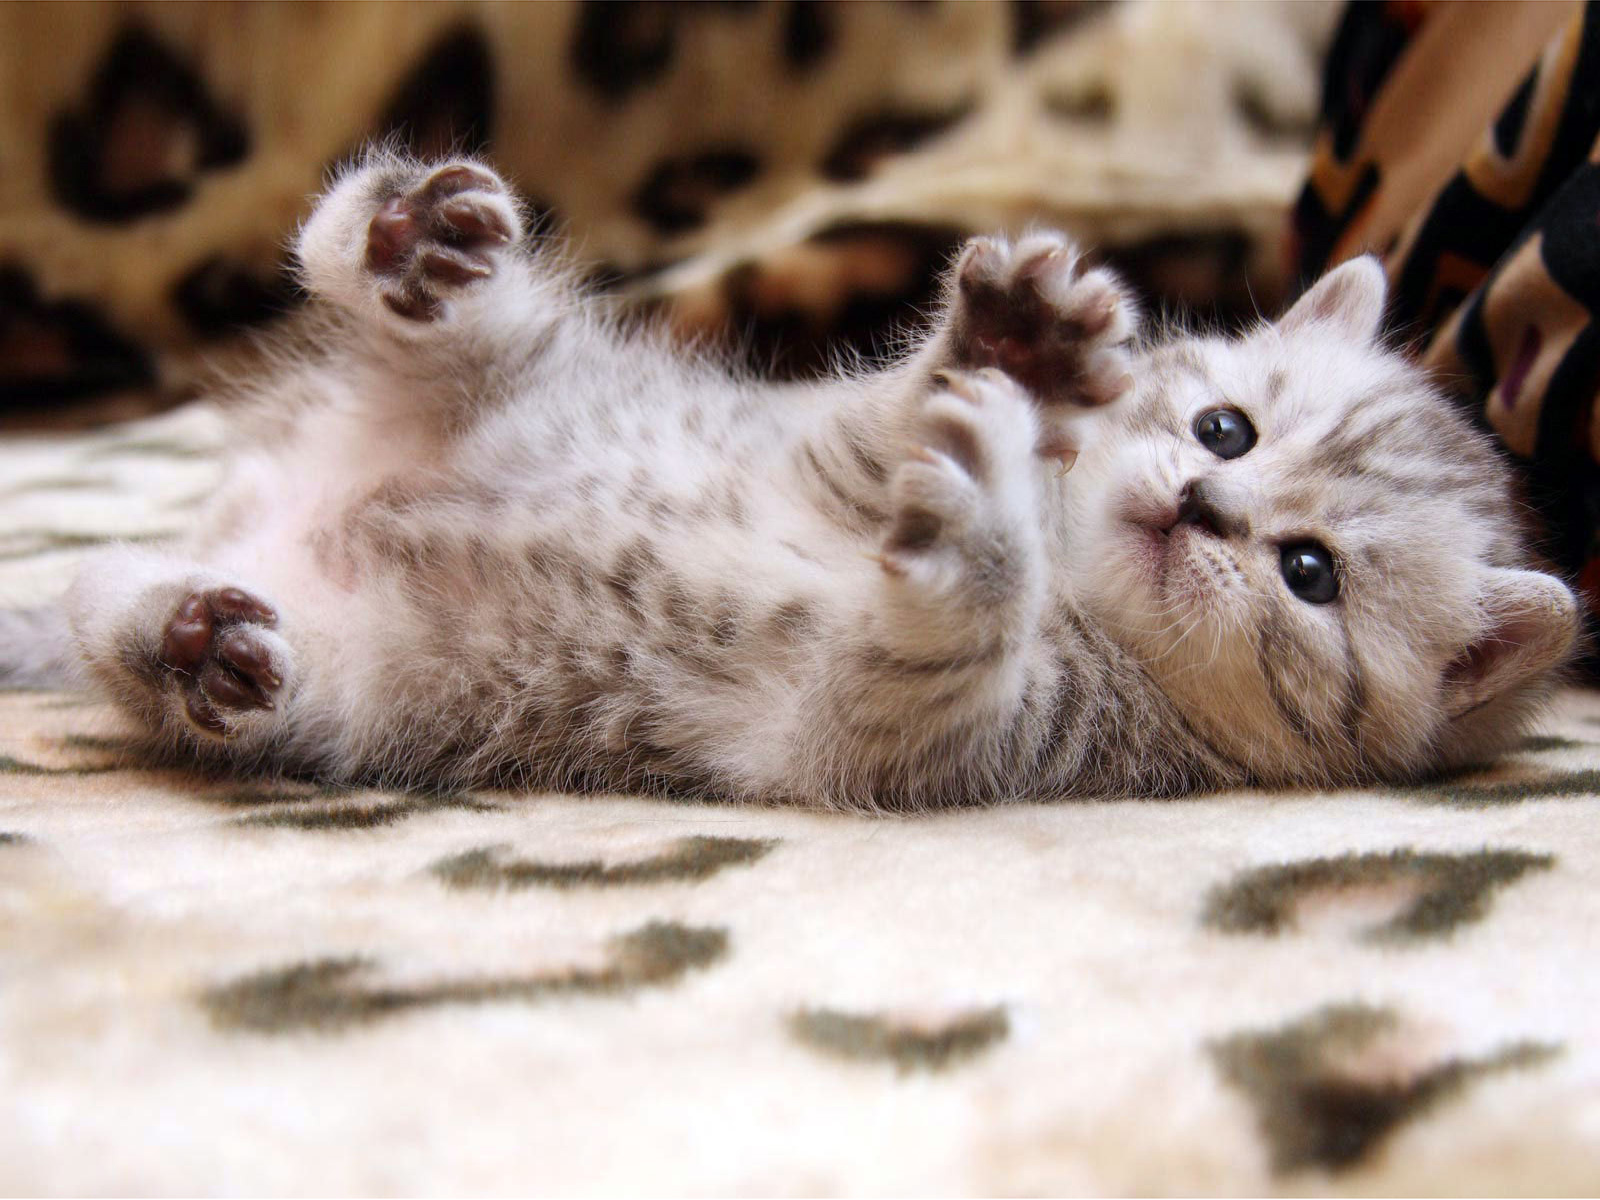 Cute cats hd wallpapers - Cute kittens hd images ...